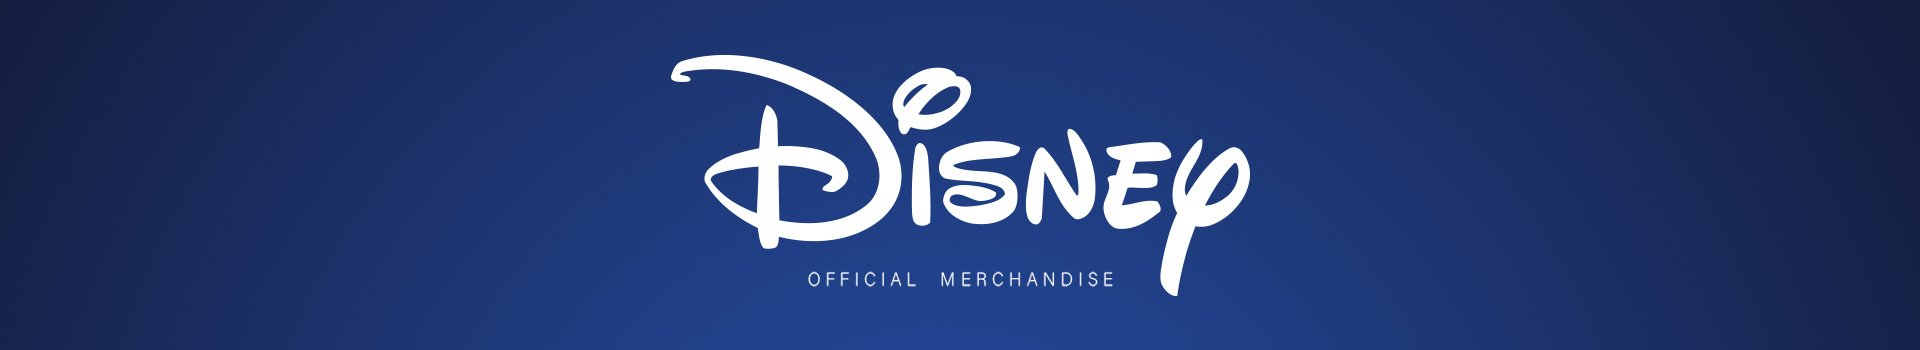 Disney - Official Merchandise